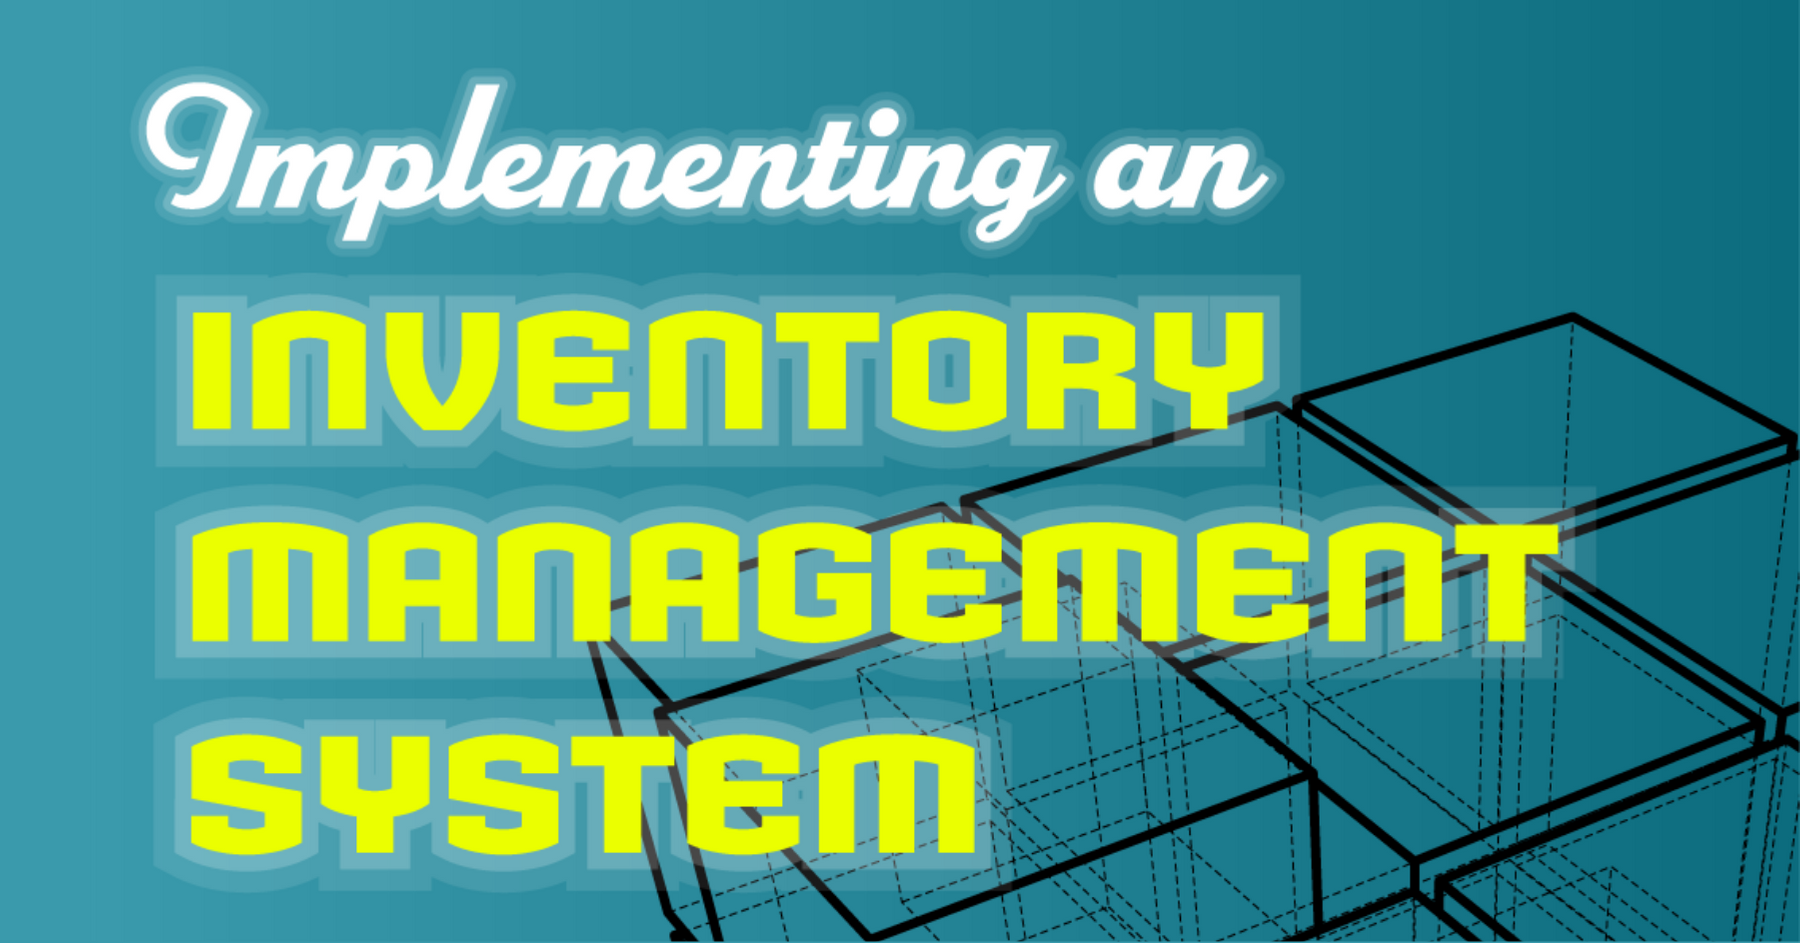 10 Steps for Implementing an Inventory Management System